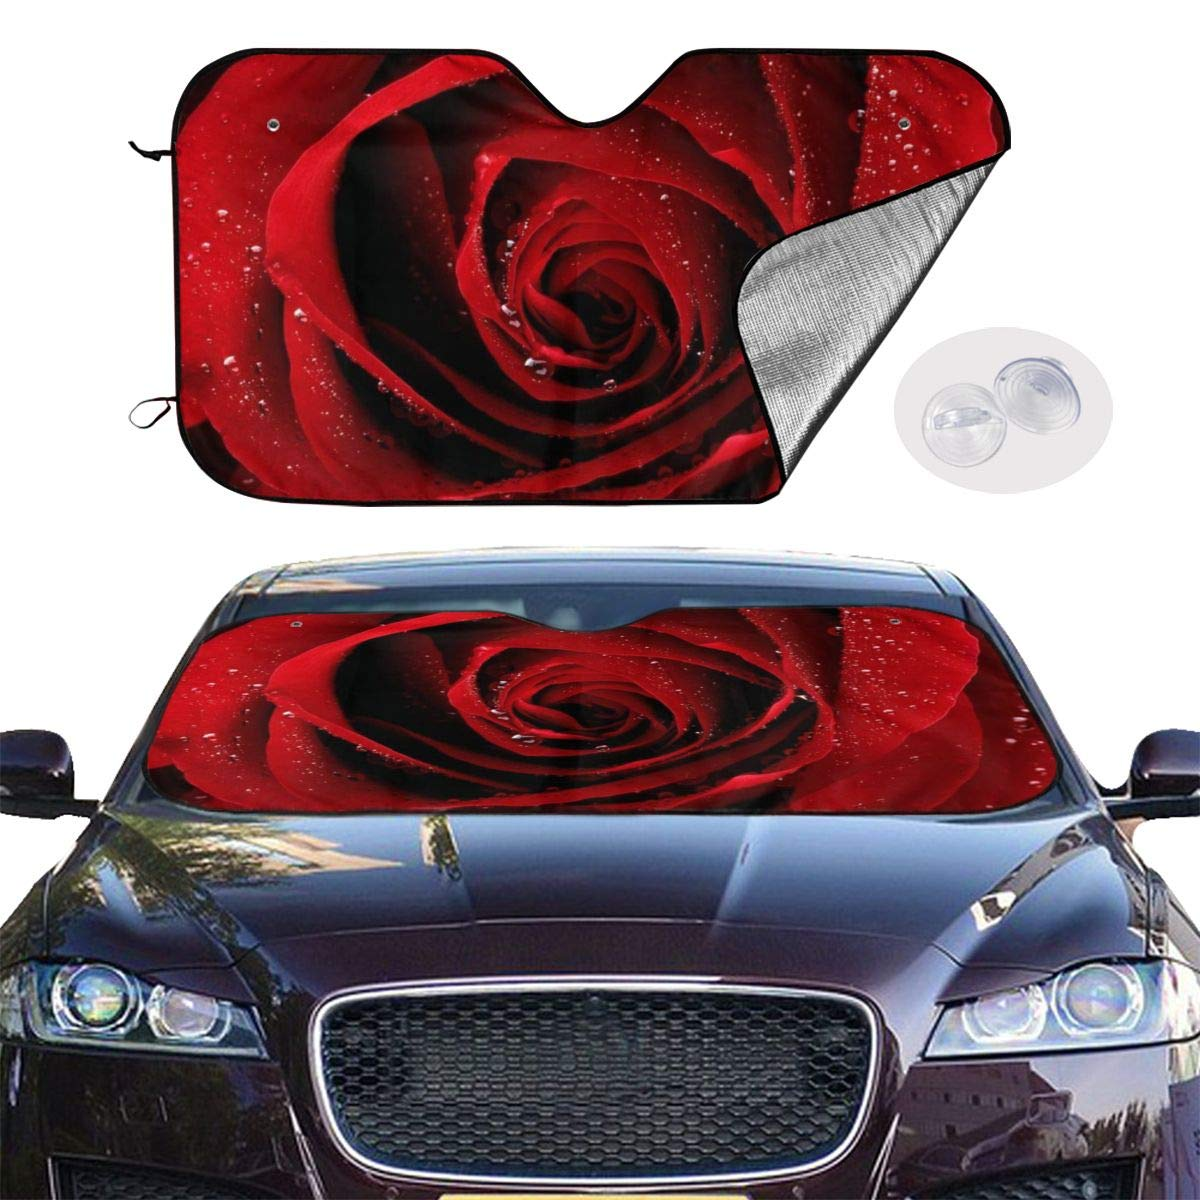 Red Rose Raindrop Car Sunshade Window Windscreen Cover,Automotive Window Protector Sunshade Uv Sun and Heat Reflector for Car Truck SUV,Keep Your Vehicle Cool and Damage Free